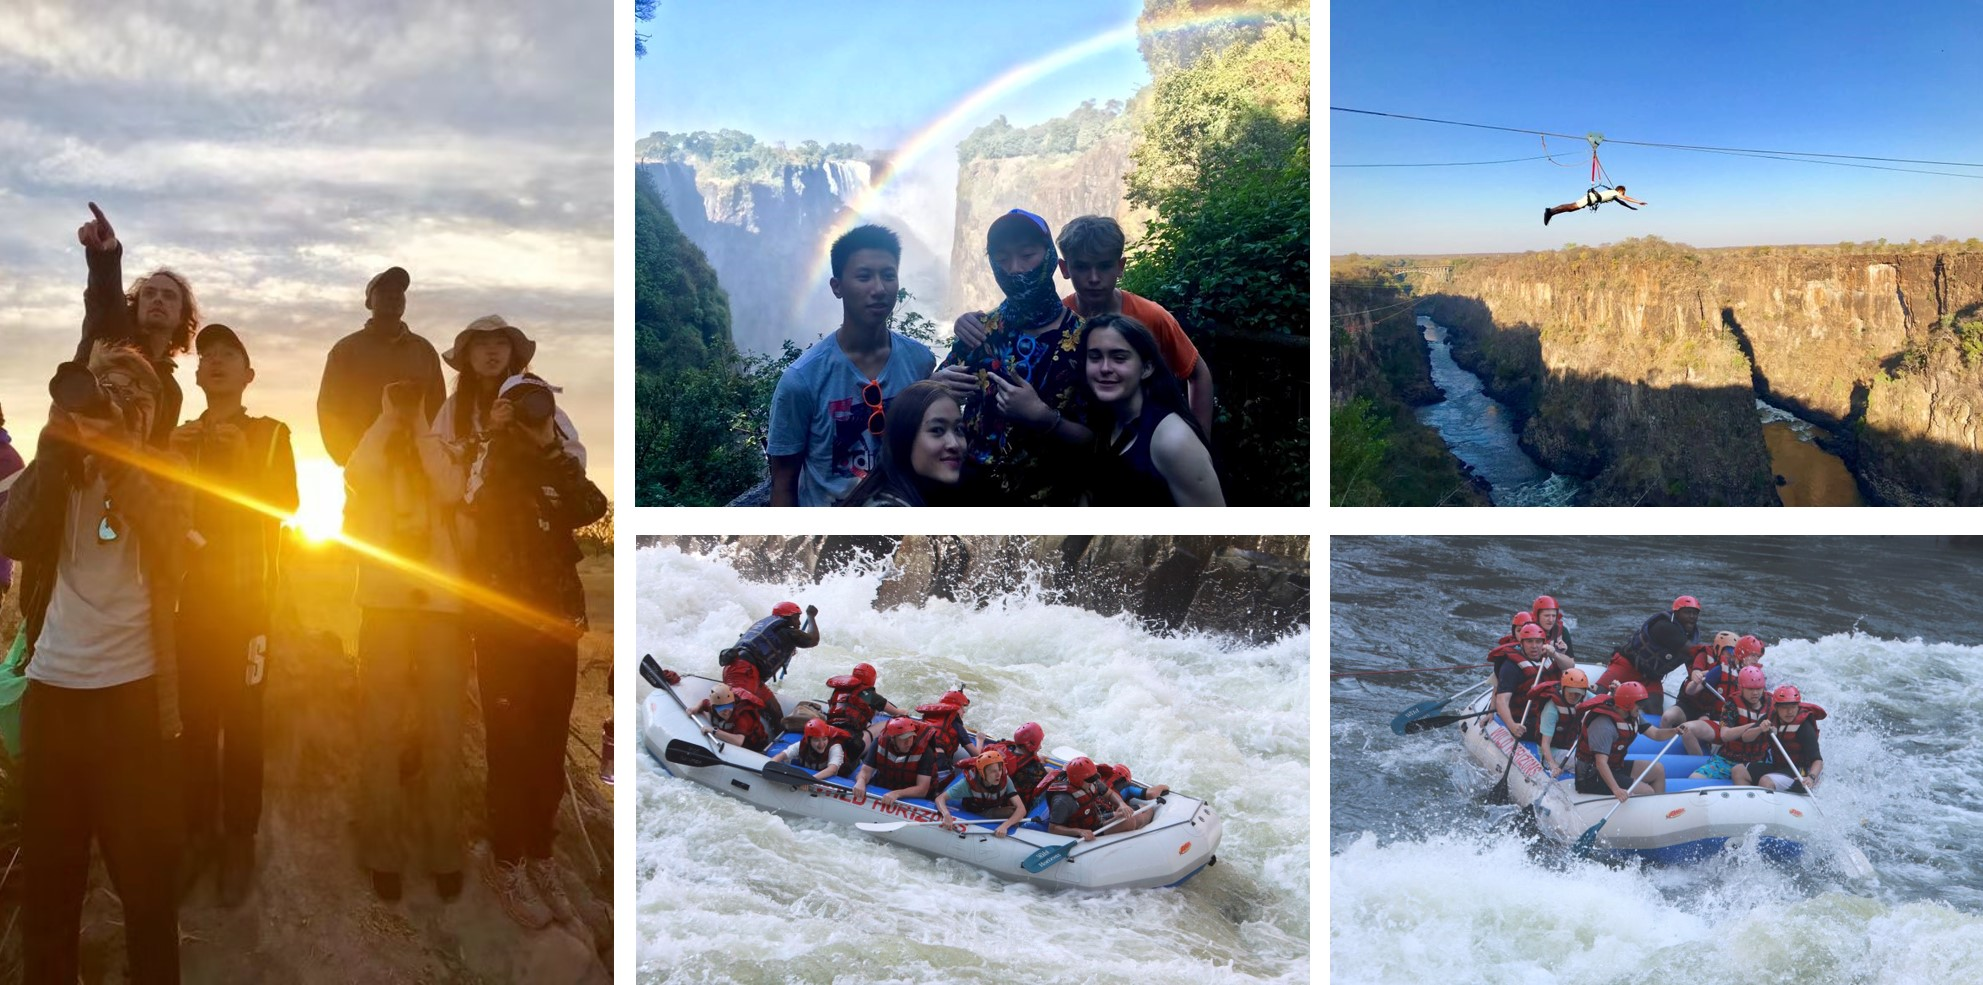 dcb-africa-trip-2019-water-fall-and-fun